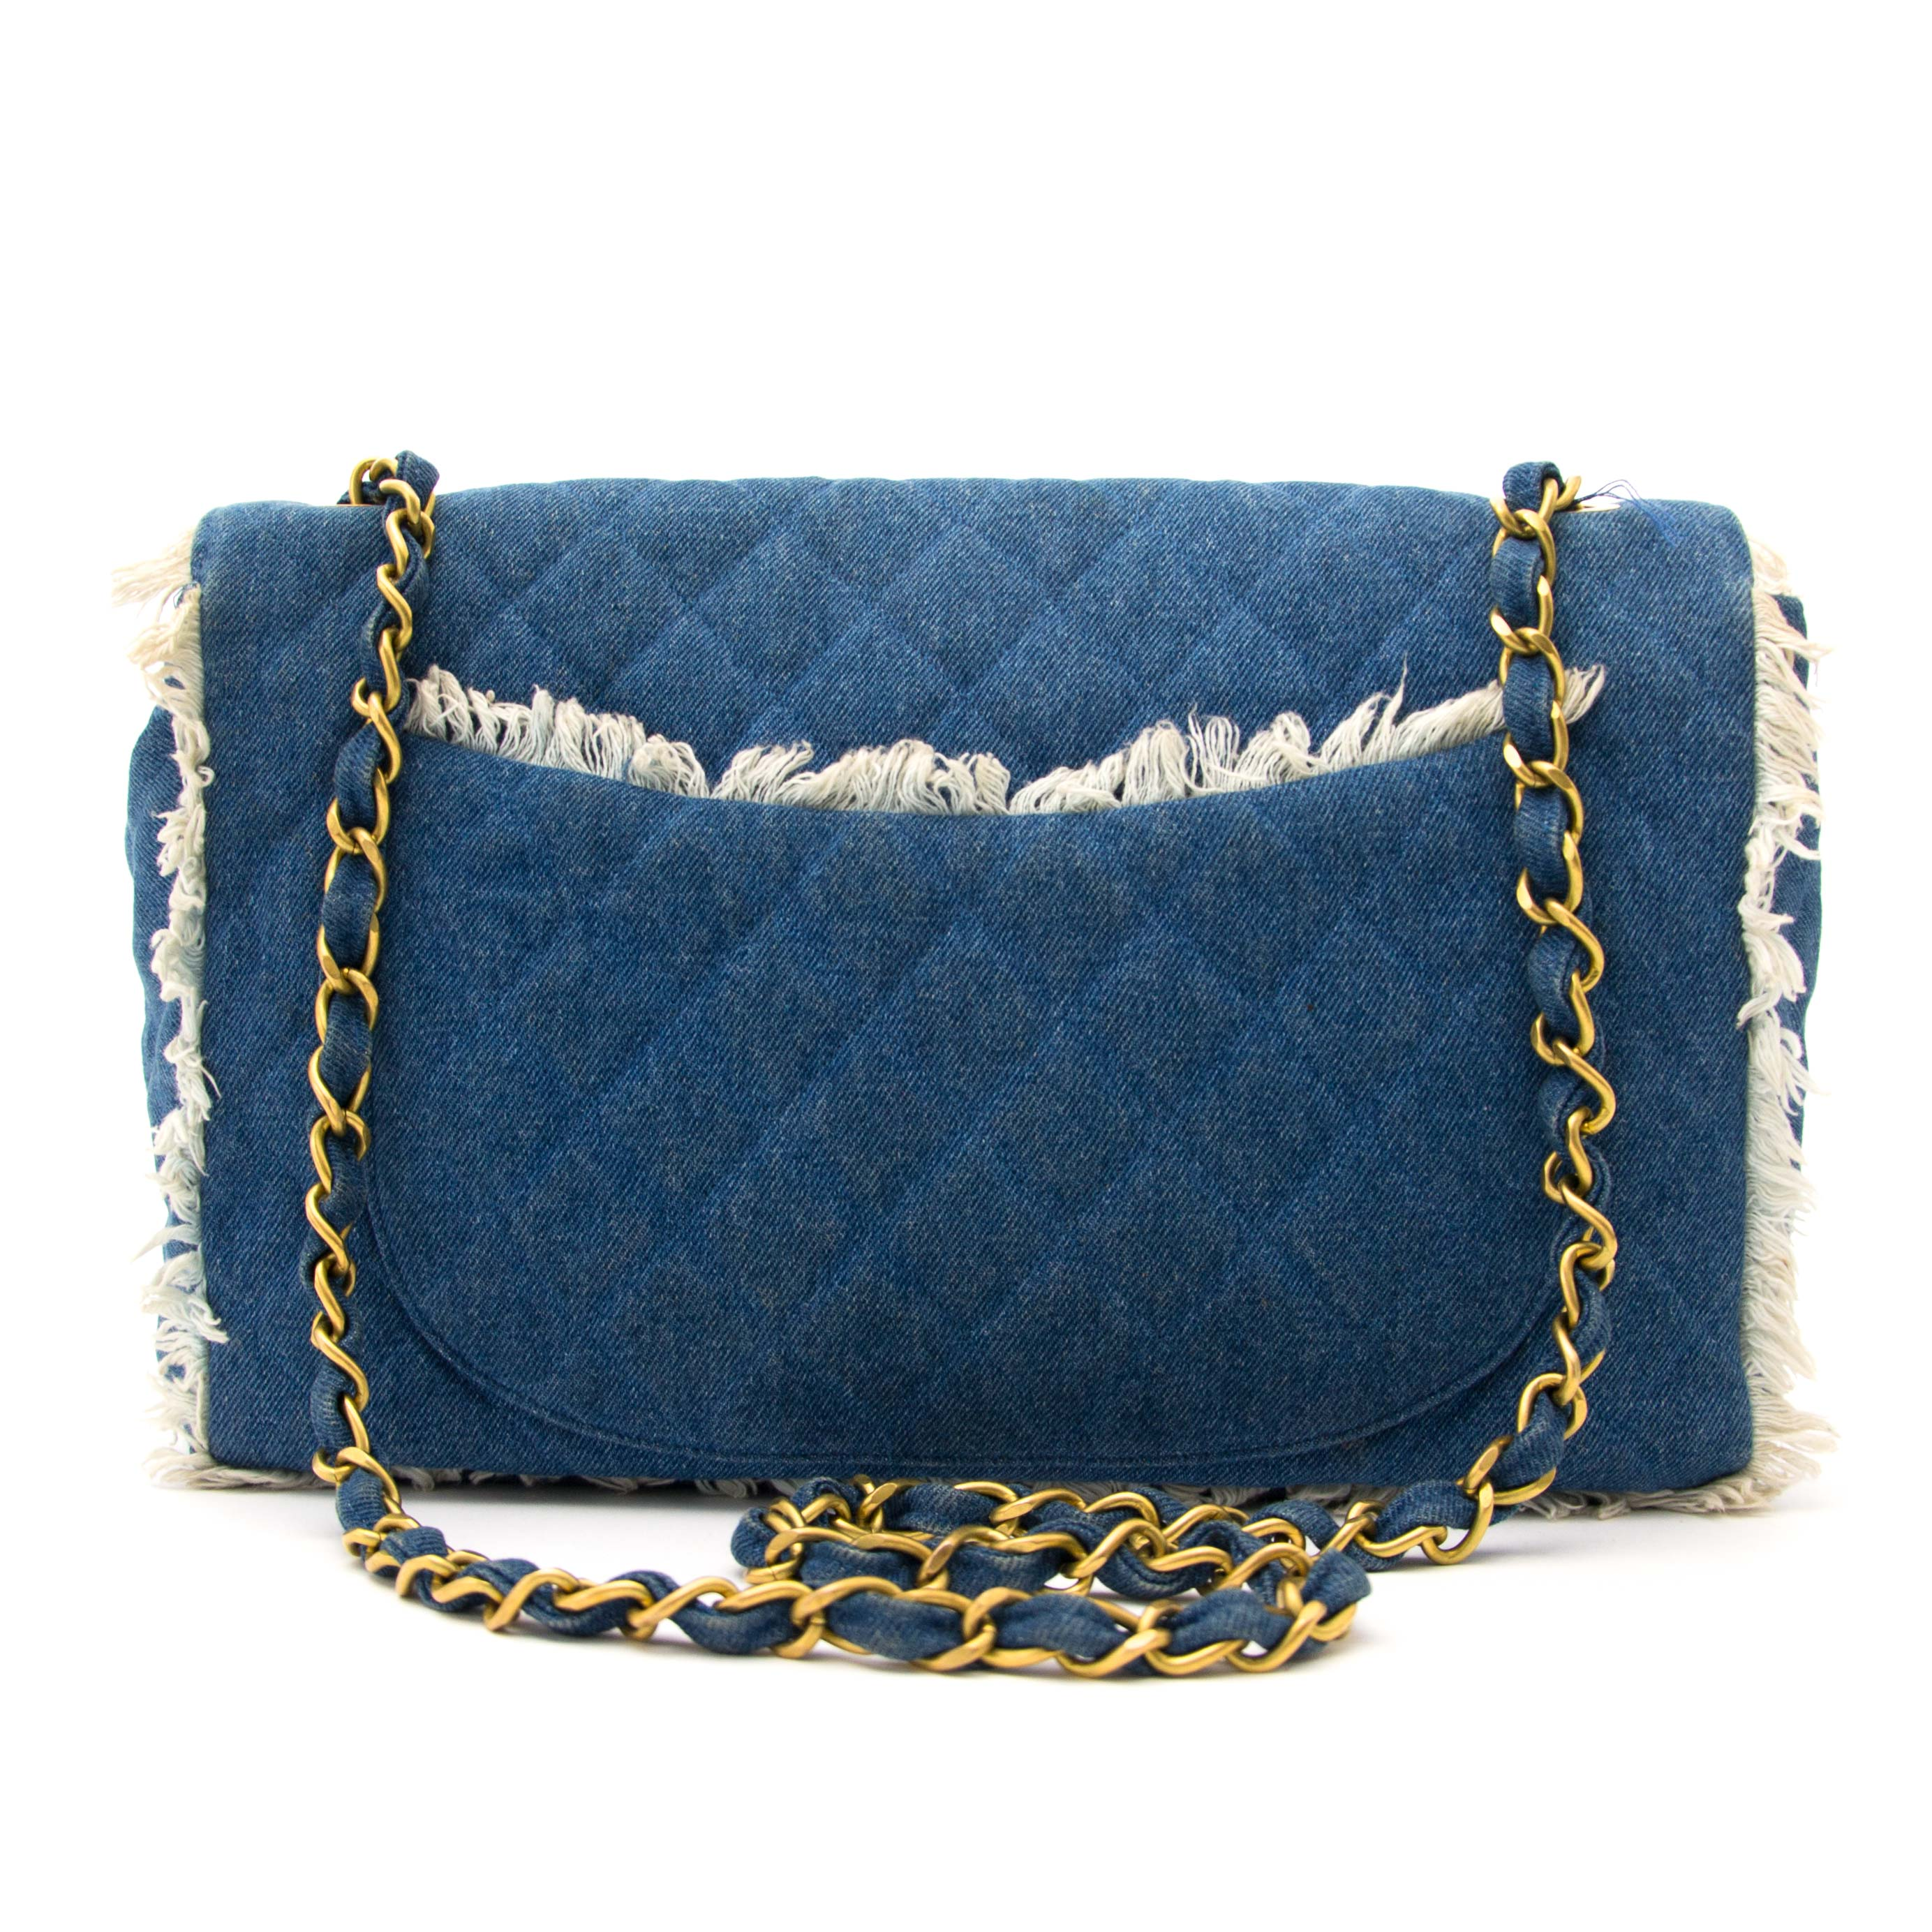 Koop authentieke Chanel 1990s Quilted Blue Denim Fringe Edge Flap Bag